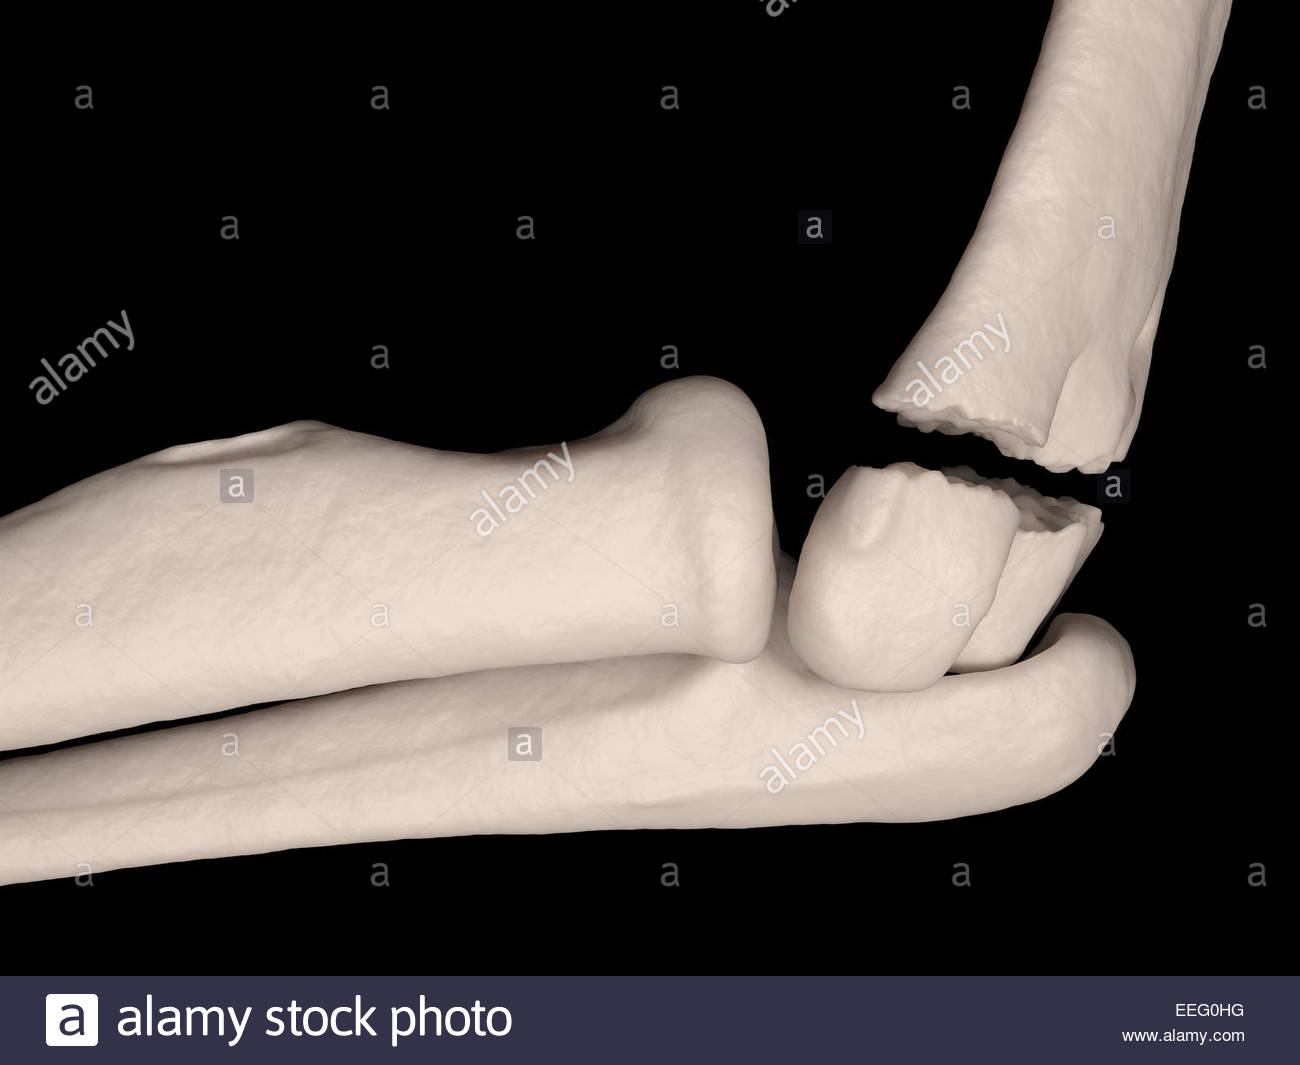 Upper Arm Bone Stock Photos Upper Arm Bone Stock Images Alamy